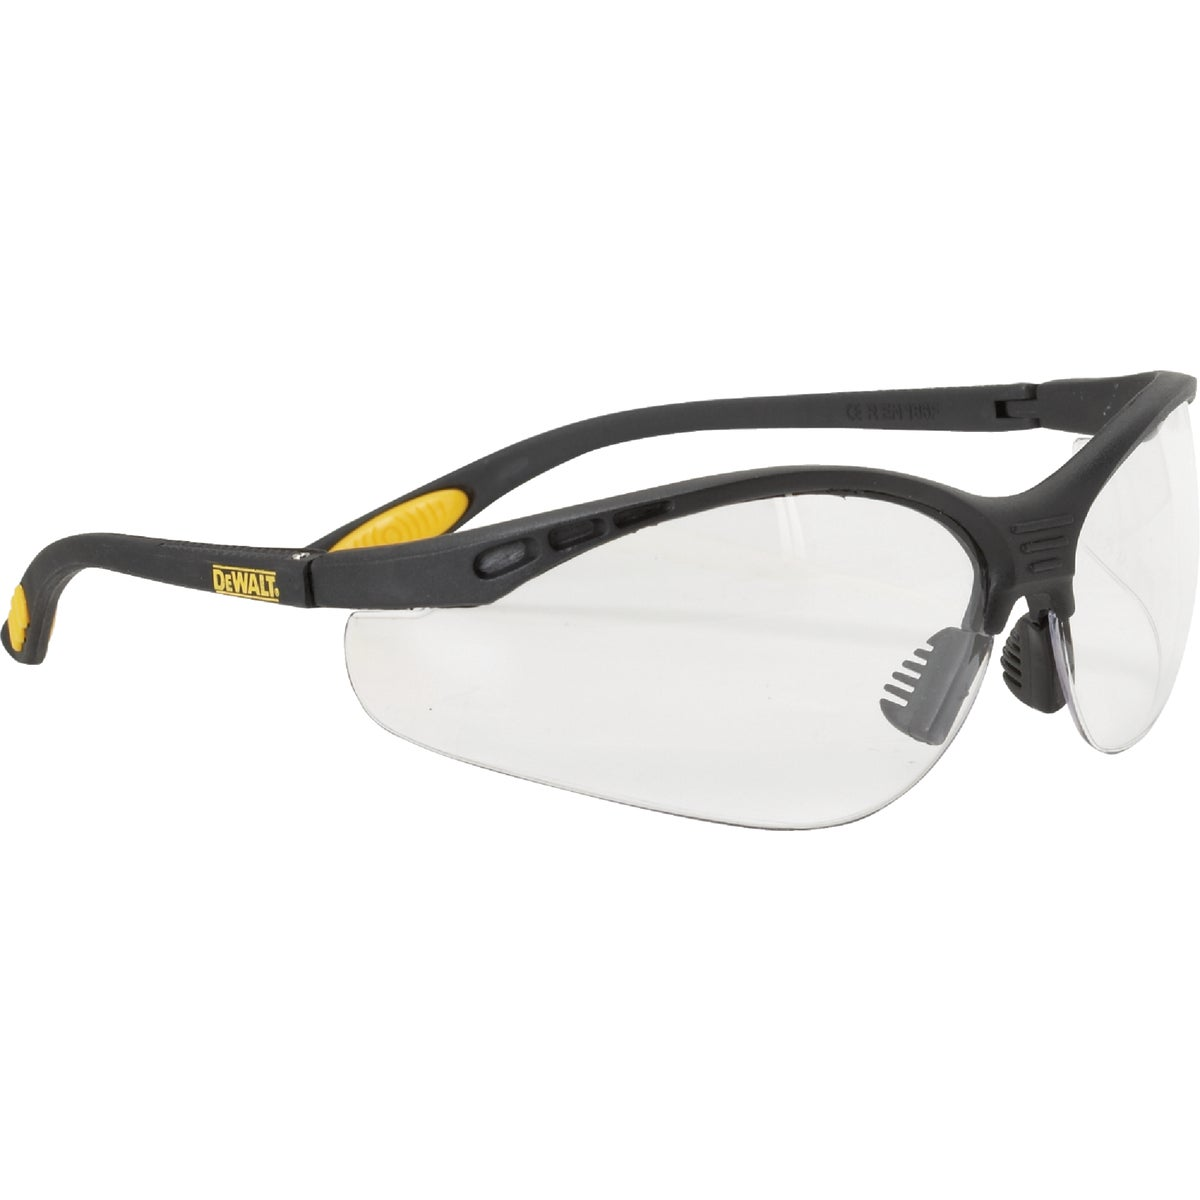 CLEAR SAFETY GLASSES - DPG58-1C by Radians